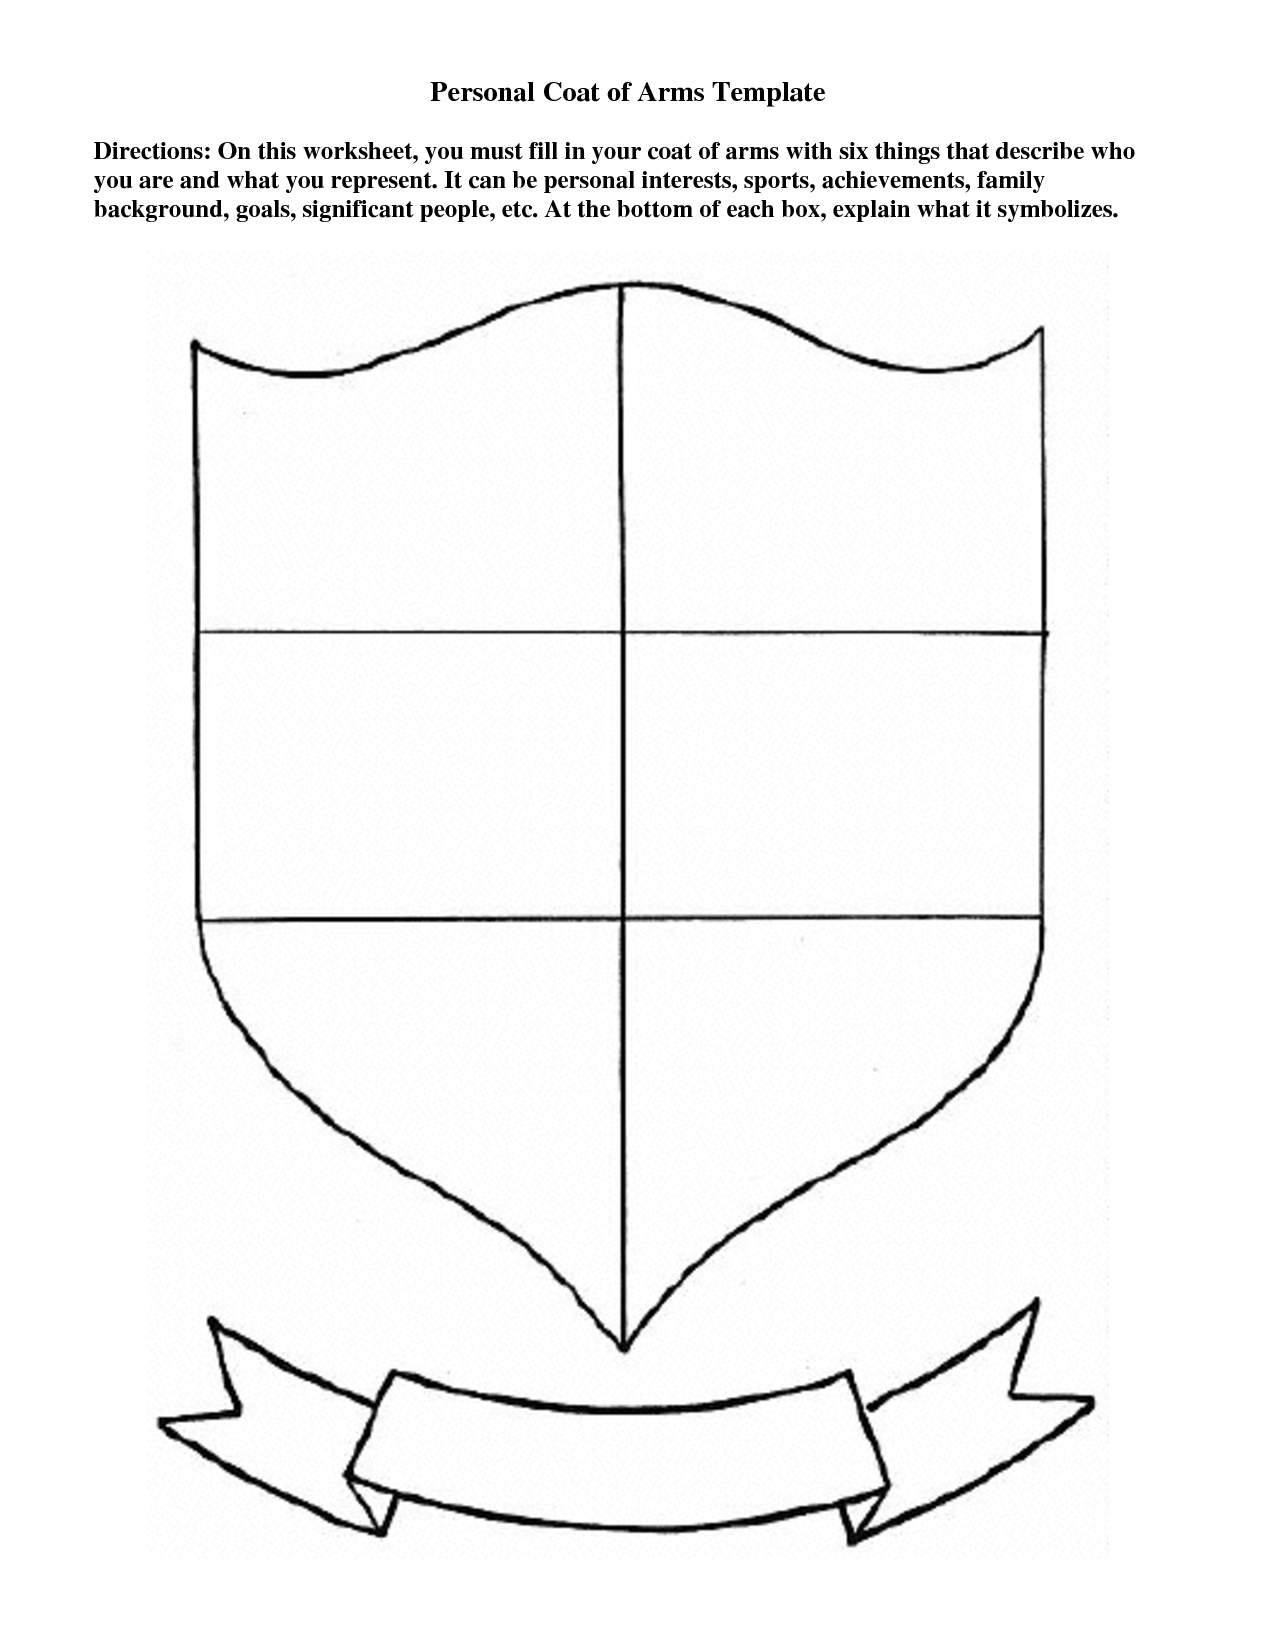 Worksheets Coat Of Arms Worksheet personal coat of arms template education pinterest coats templates template